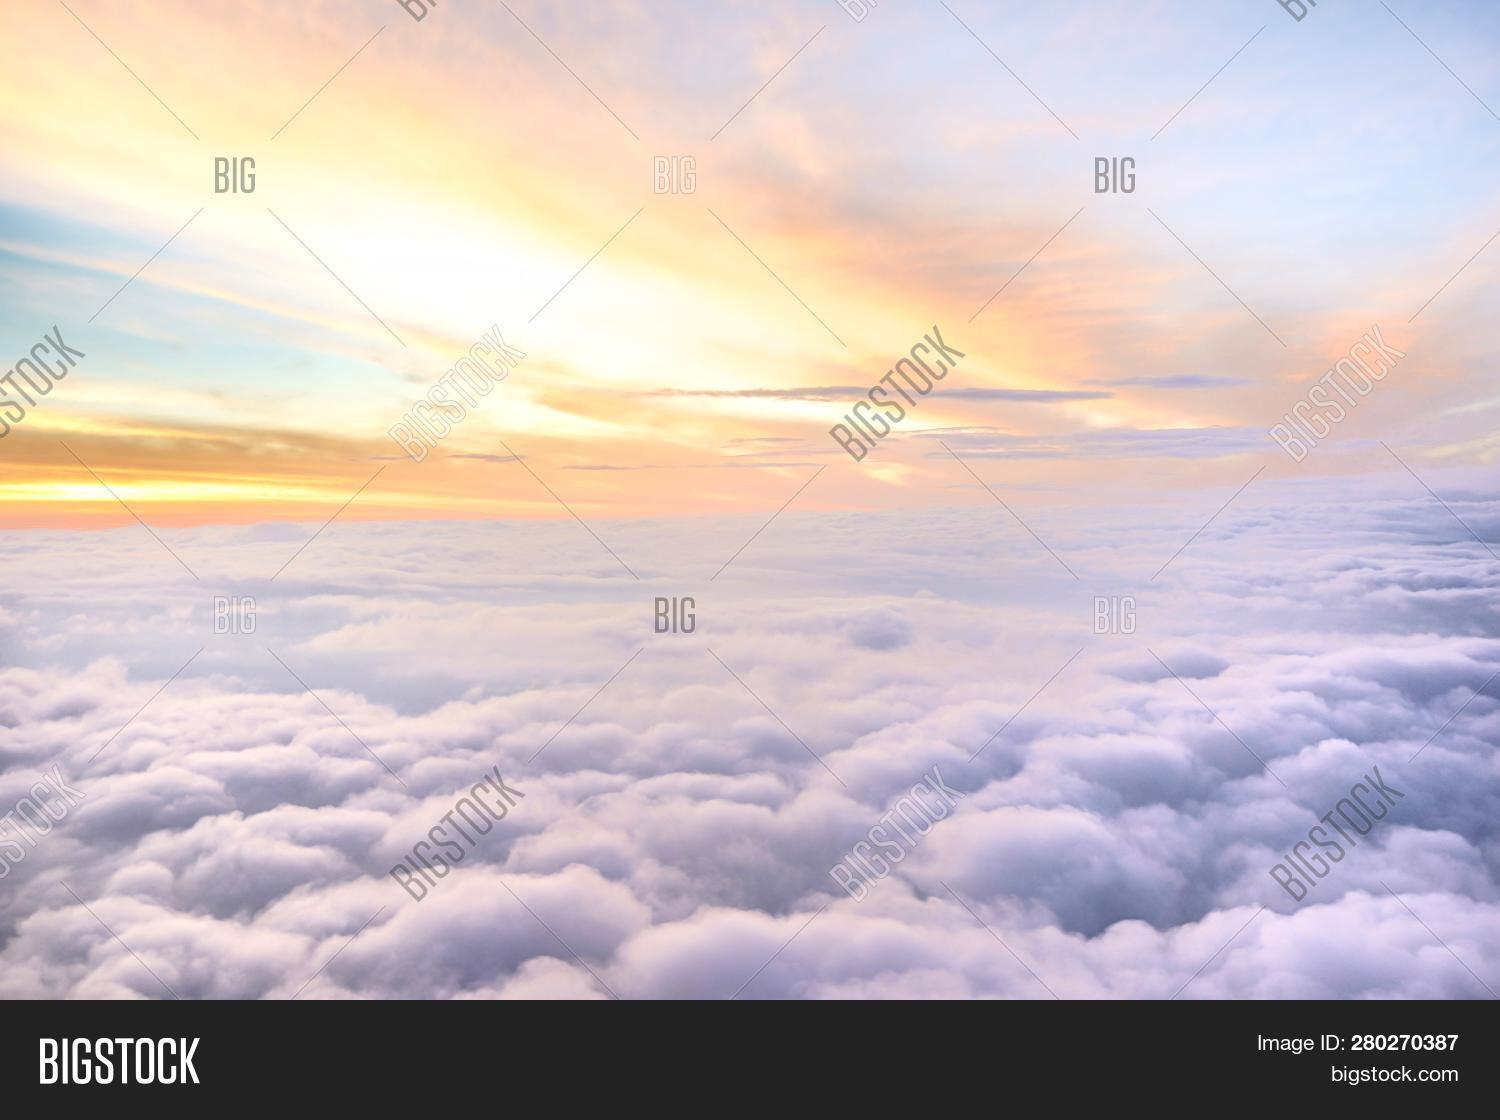 above,abstract,air,atmosphere,backdrop,background,beautiful,beauty,blue,bright,brightly,clear,climate,cloud,cloudscape,cloudy,copy,cumulus,flight,fluffy,fly,freedom,heaven,high,idyllic,landscape,light,meteorology,natural,nature,outdoor,over,ozone,plane,scene,scenery,scenic,sky,softness,space,sun,sunbeam,sunlight,sunny,sunshine,top,tranquil,view,weather,white